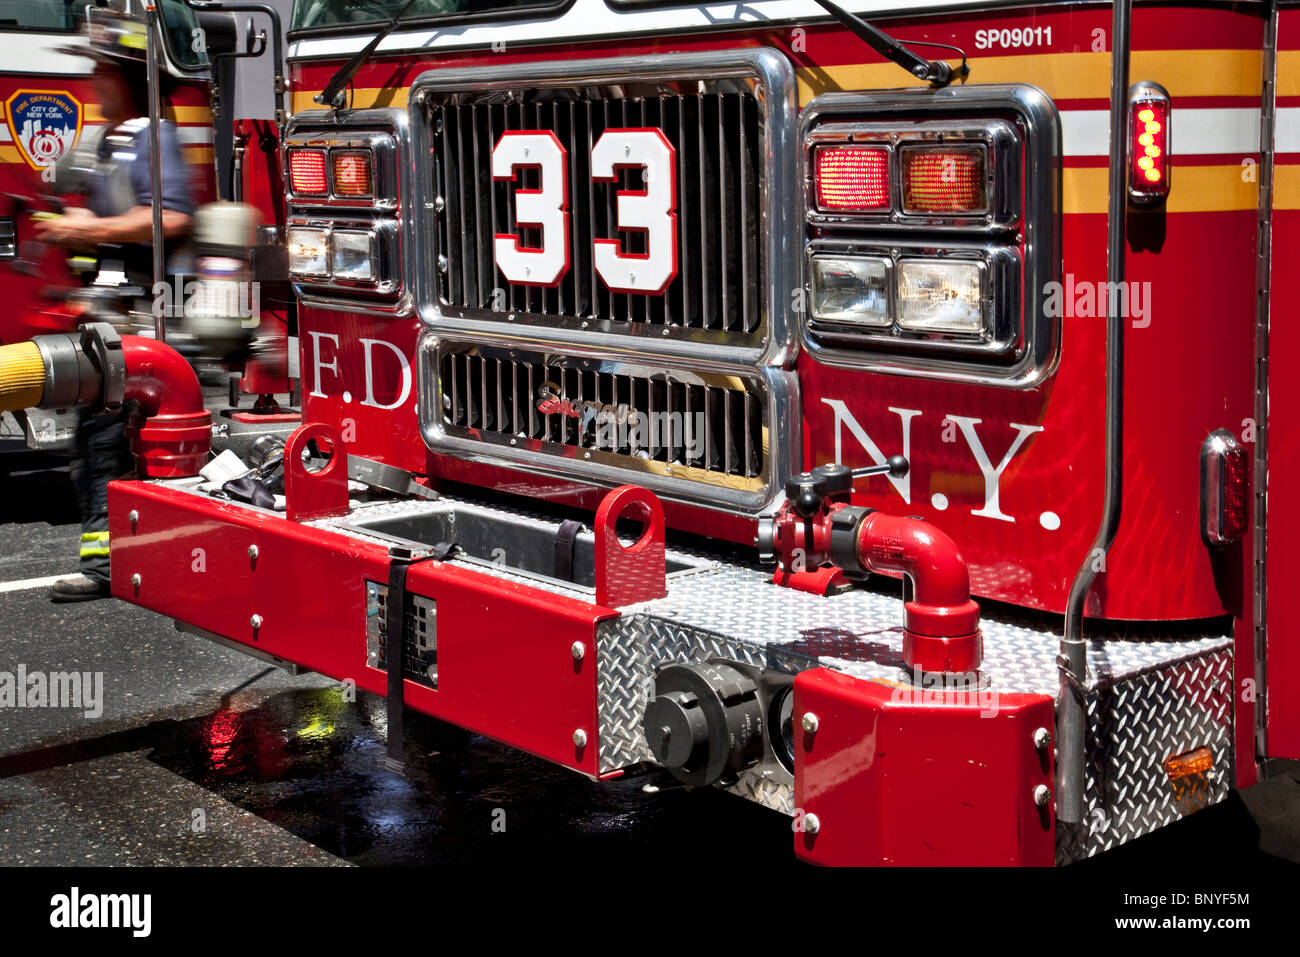 Tow Truck Houston >> FDNY fire truck front grill Stock Photo, Royalty Free Image: 30722768 - Alamy